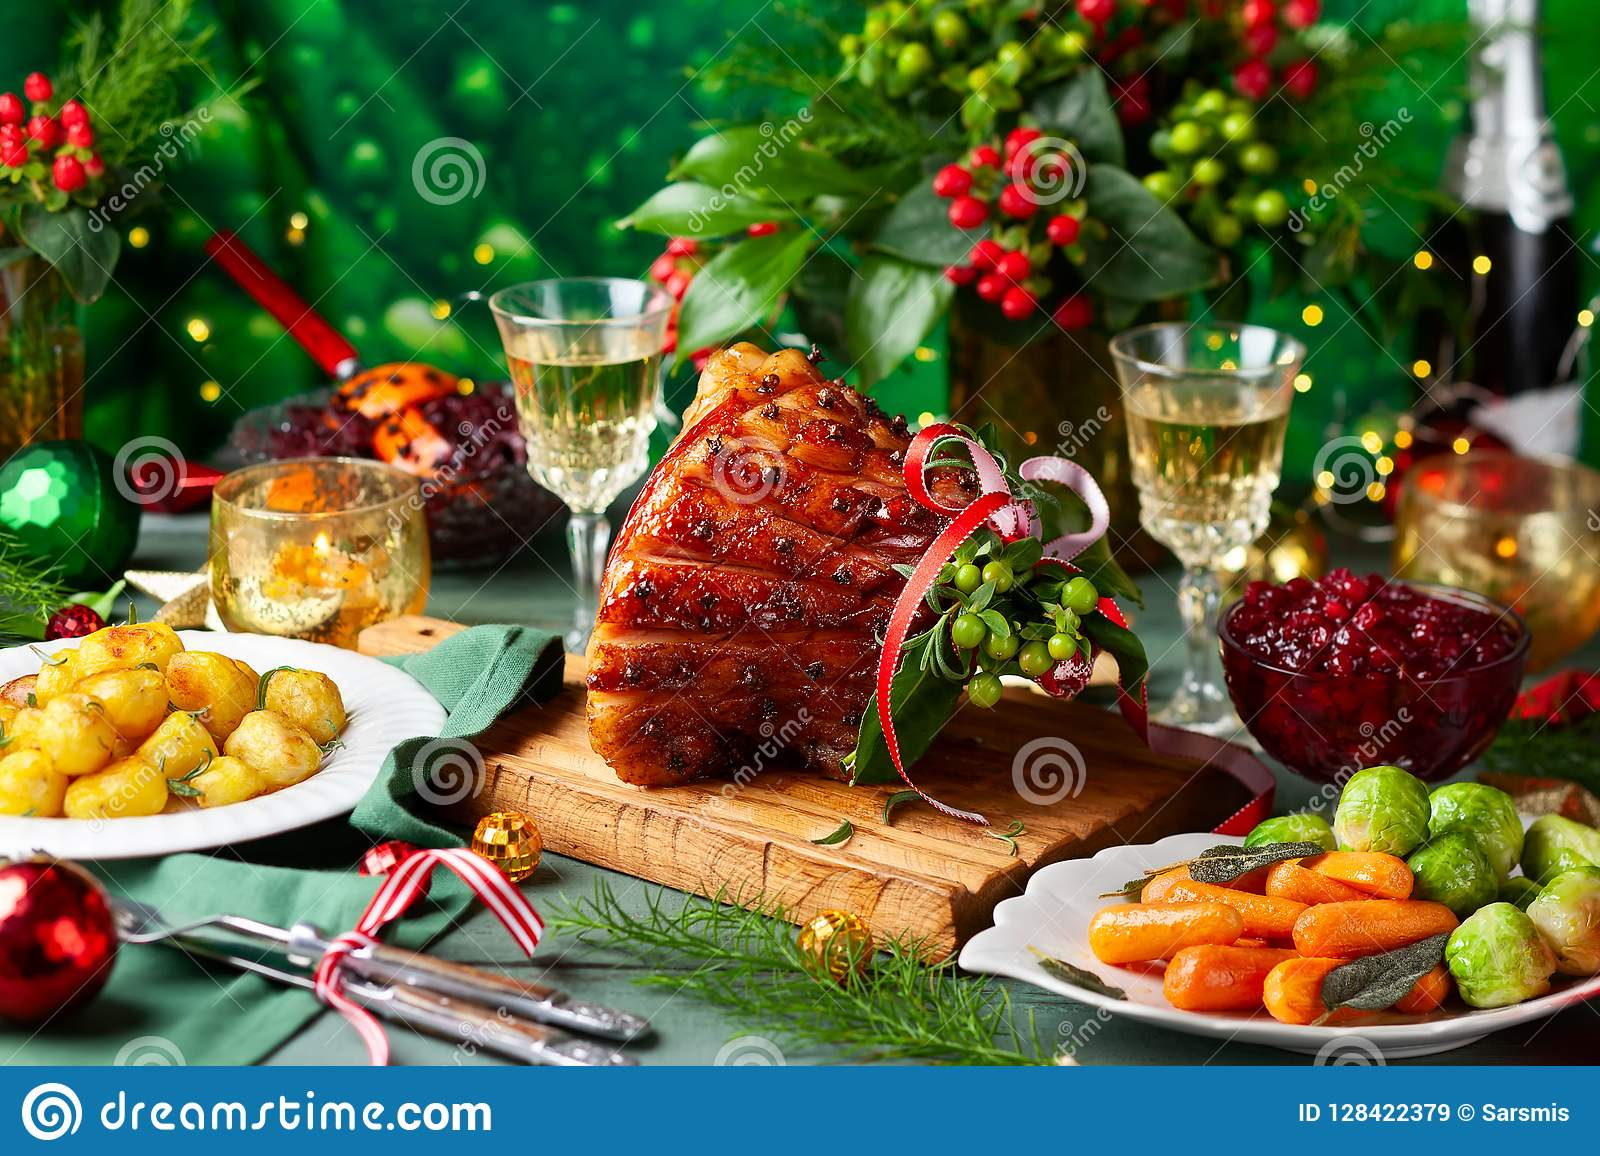 Christmas Dinner With Side Dishes Stock Image Image Of Green Honey 128422379